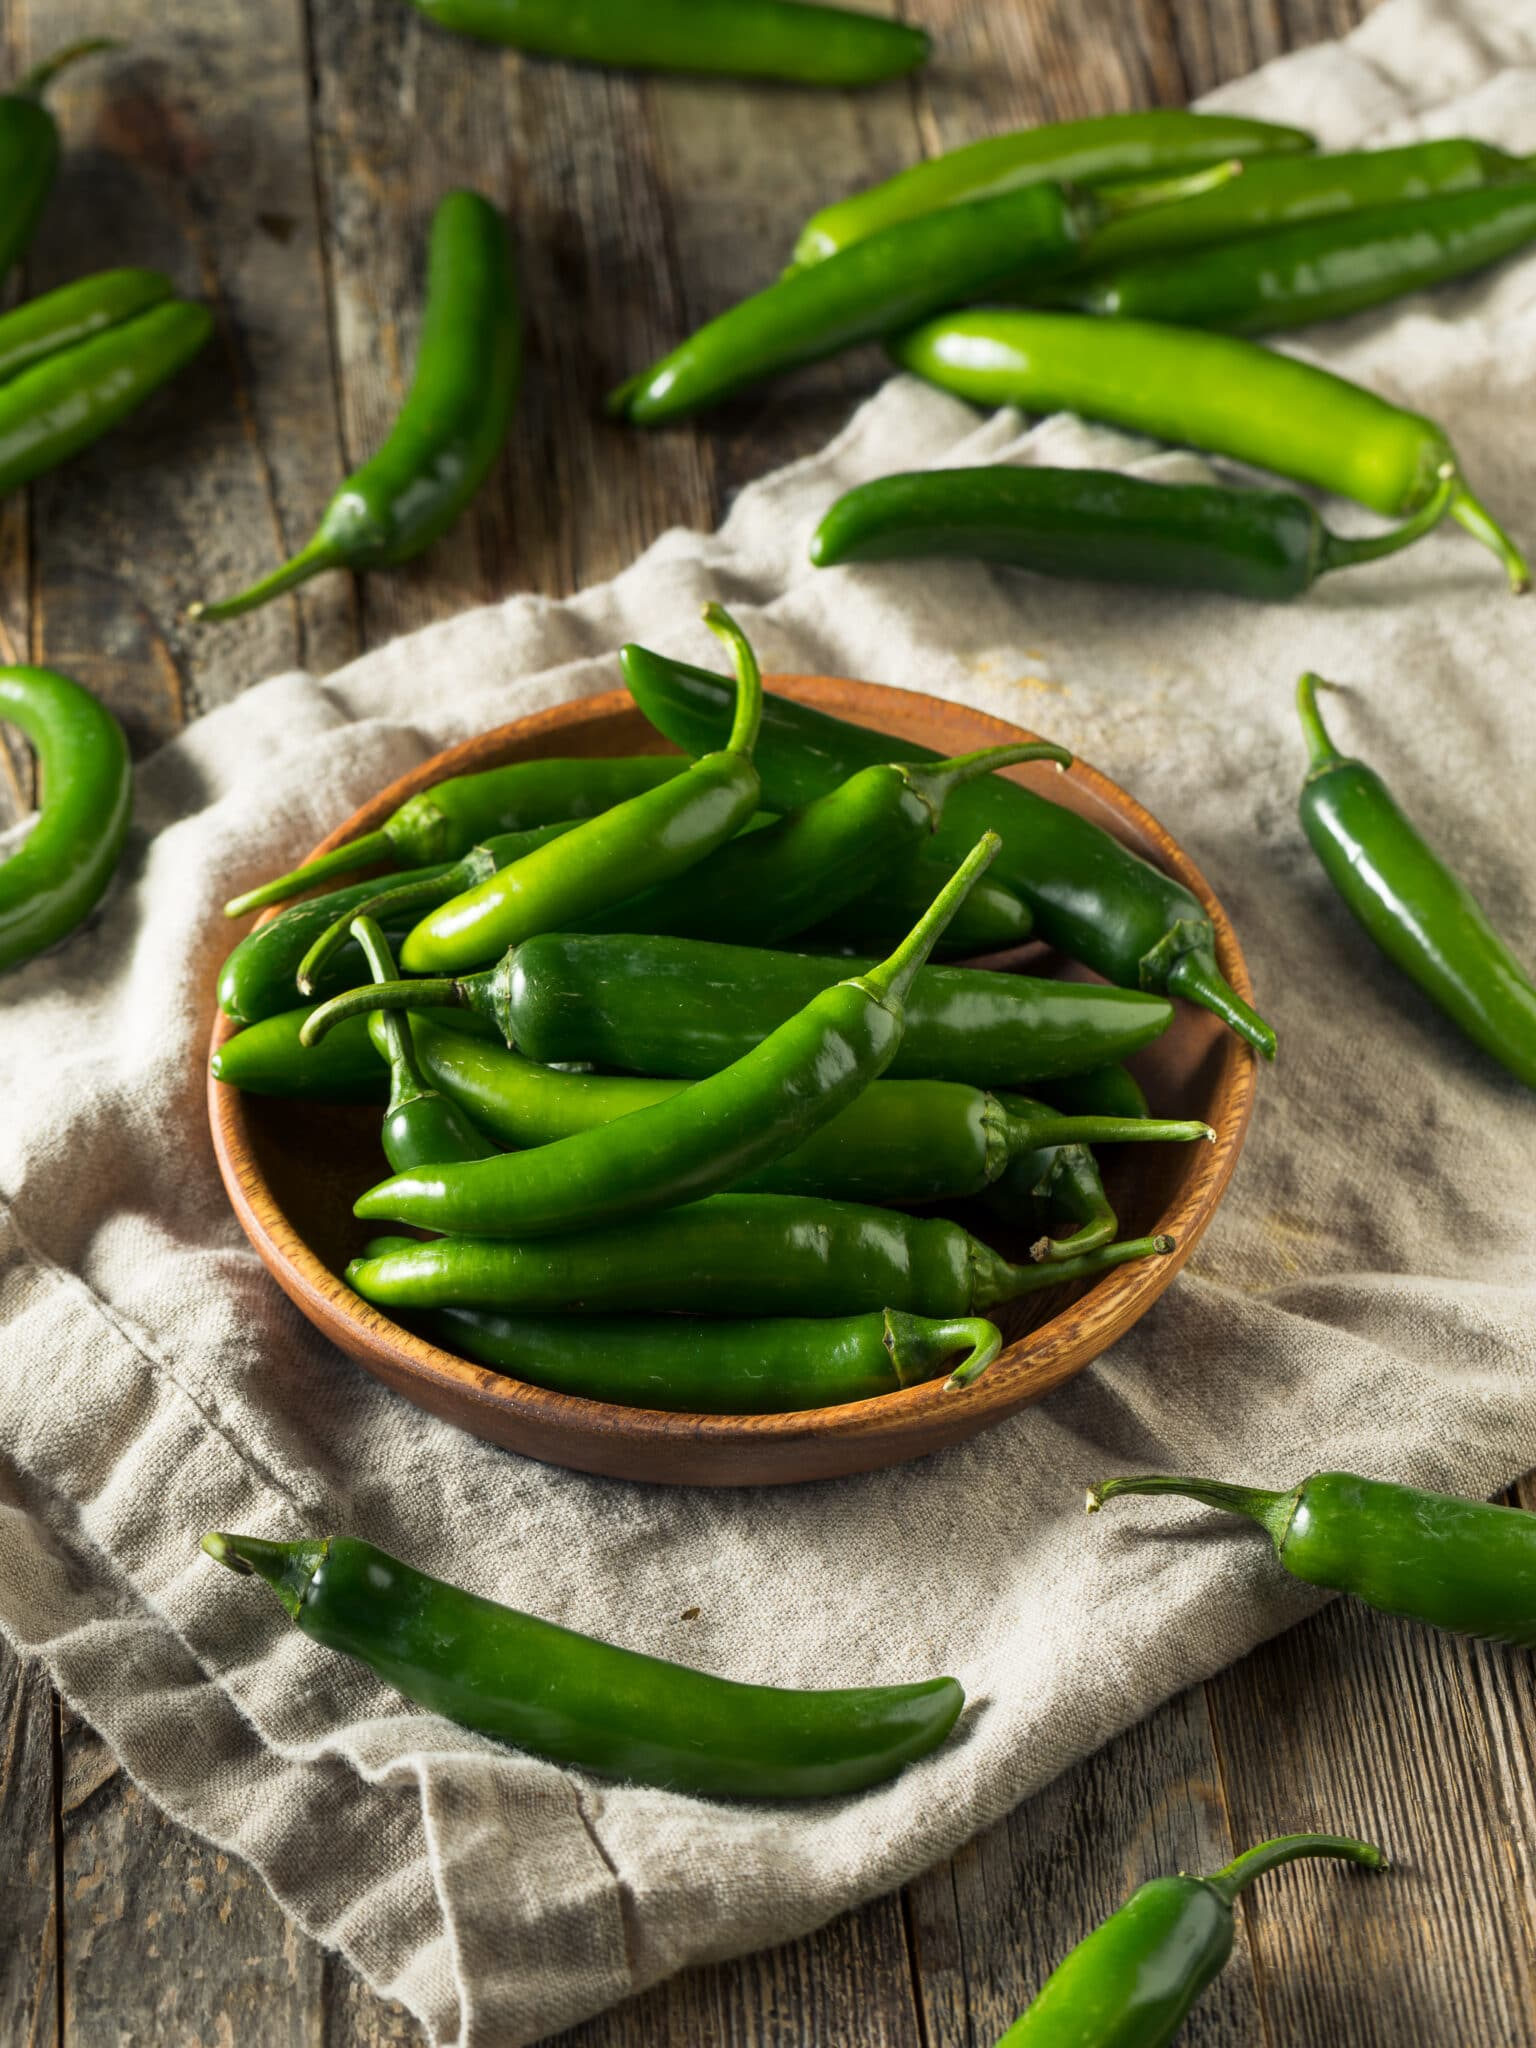 A small basket full of jalapenos.